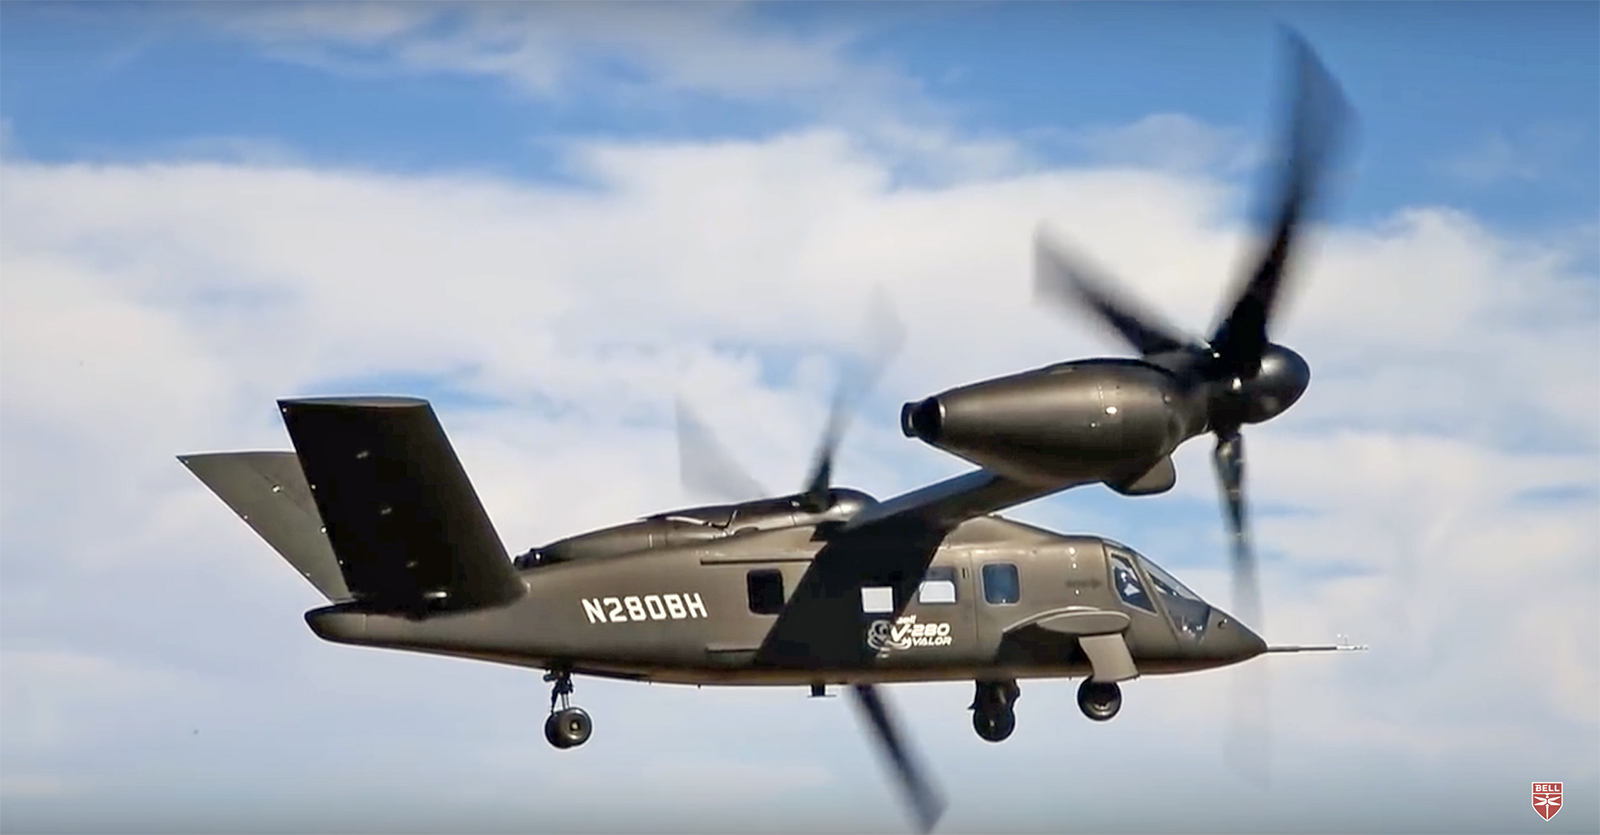 blackhawk helicopter with Bell V 280 Valor Conducts First Cruise Mode Test Flight As Program Advances on E0 B9 82 E0 B8 A1 E0 B9 80 E0 B8 94 E0 B8 A5  E0 B9 80 E0 B8 AE E0 B8 A5 E0 B8 B4 E0 B8 84 E0 B8 AD E0 B8 9B E0 B9 80 E0 B8 95 E0 B8 AD E0 B8 A3 E0 B9 8C E0 B9 84 E0 B8 97 E0 B8 A2 Helicopter Uh 72a besides Bell V 280 Valor Conducts First Cruise Mode Test Flight As Program Advances in addition Bell Ah 1z Helicopter likewise JClick together with The Secret History Of Seal Team 6.